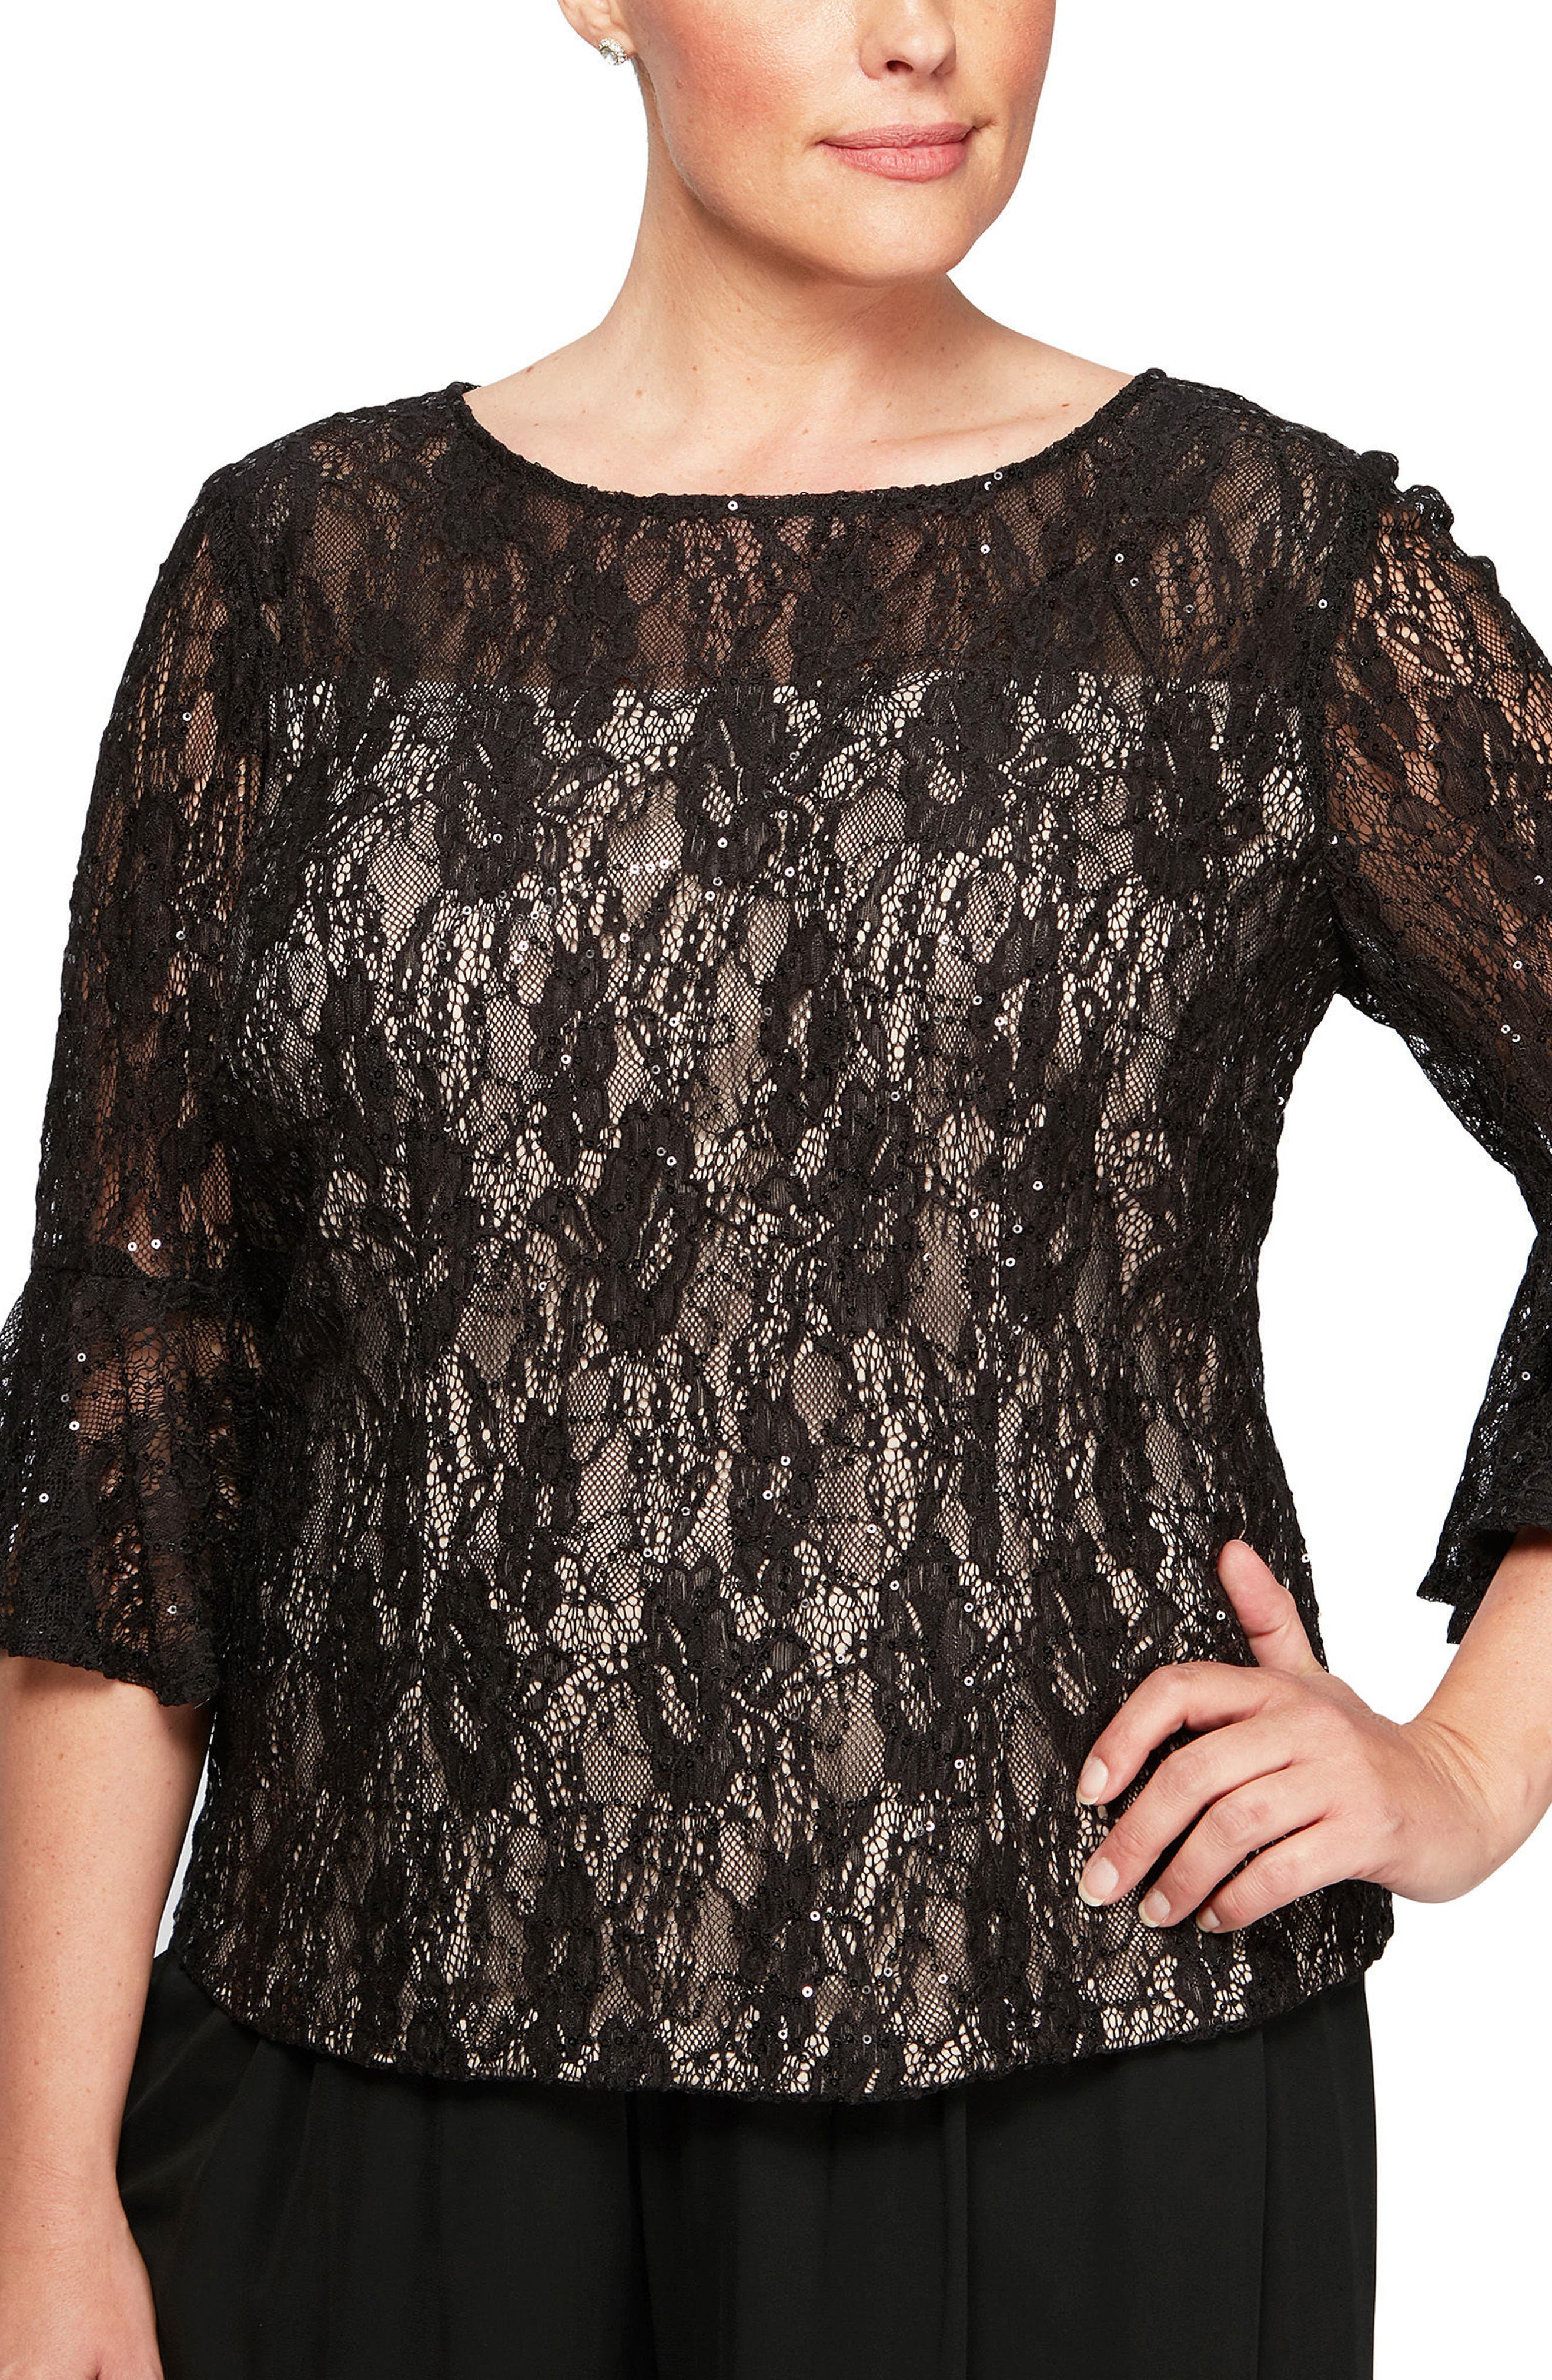 Bell Sleeve Sequin Lace Blouse,                         Main,                         color, Black/ Nude